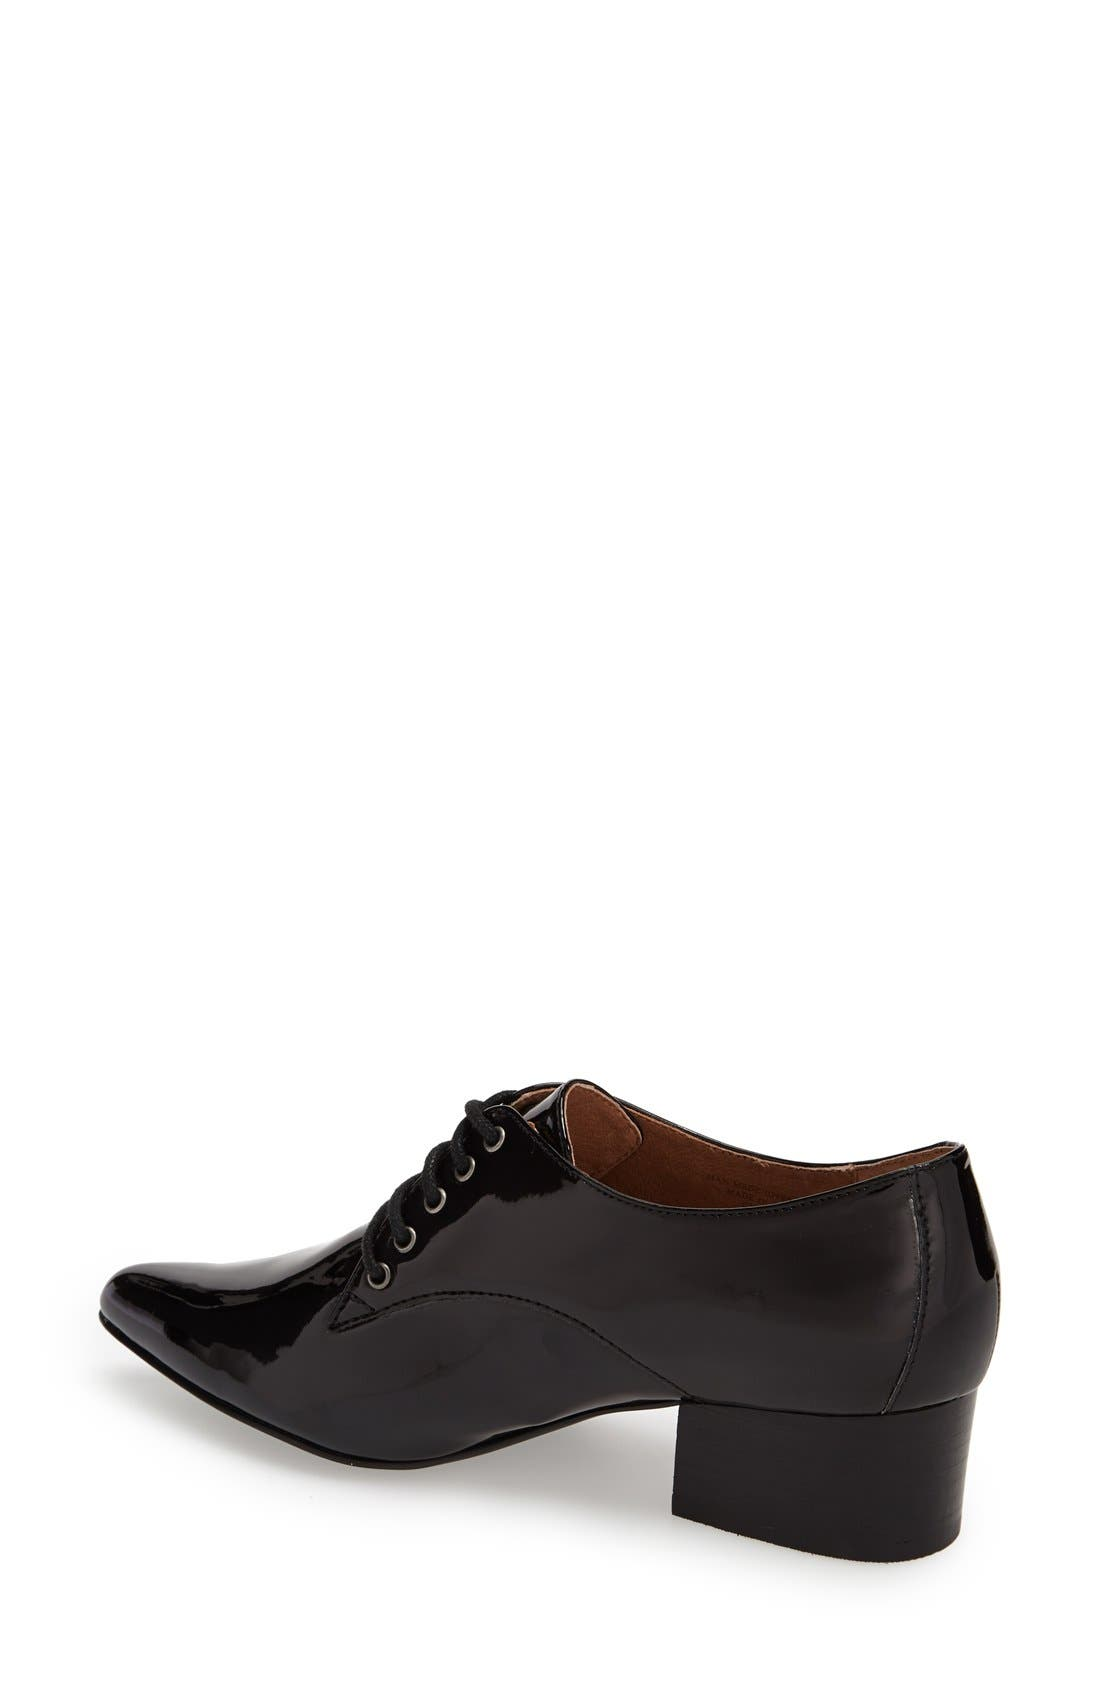 Alternate Image 2  - Bettye by Bettye Muller 'Quart' Pointy Toe Oxford (Women)